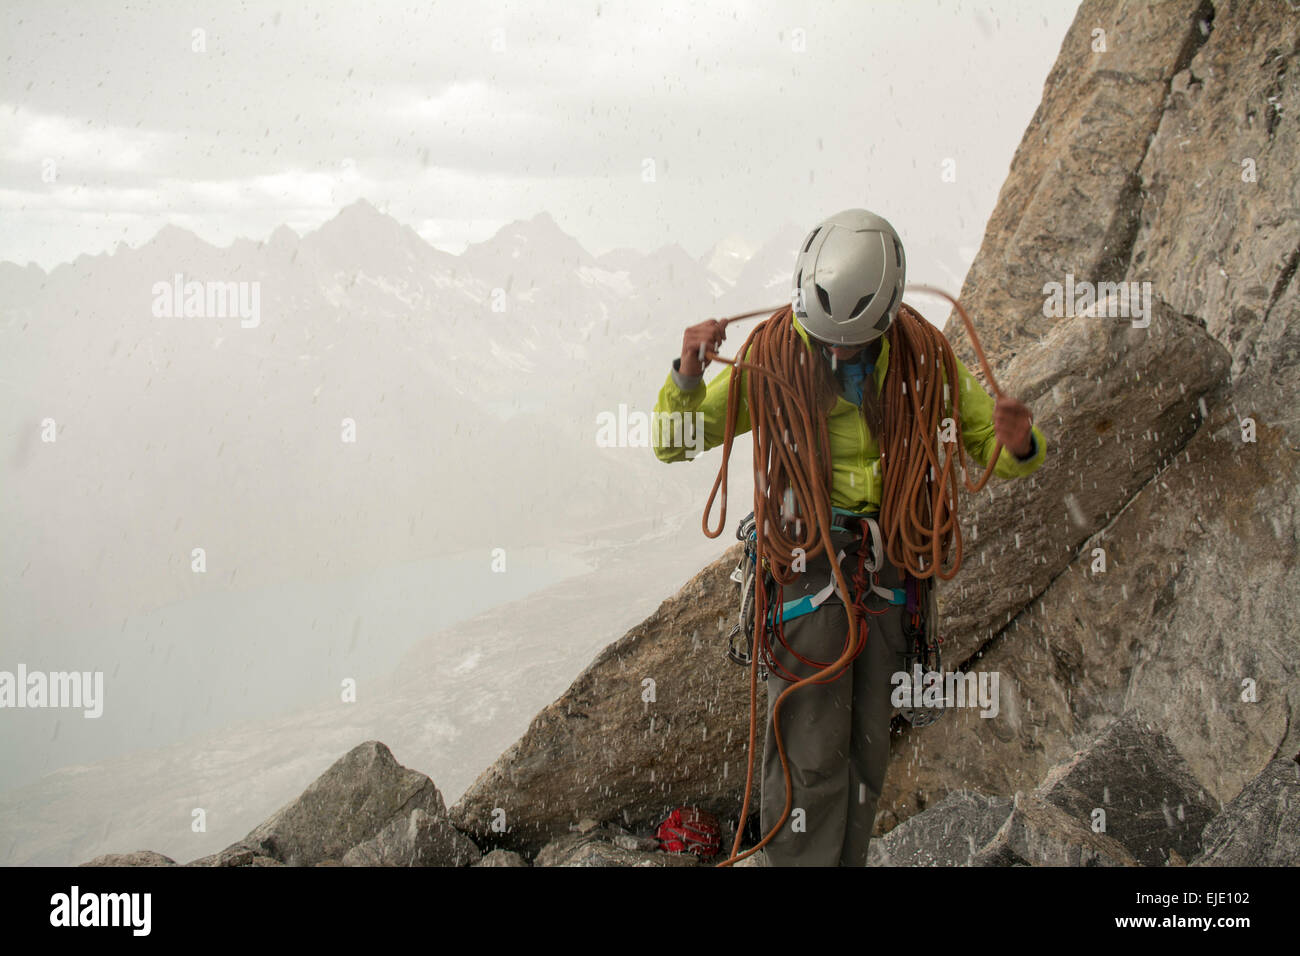 A woma coiling a rope in a storm, Titcomb Basin, WInd River Range, Pinedale, Wyoming. - Stock Image